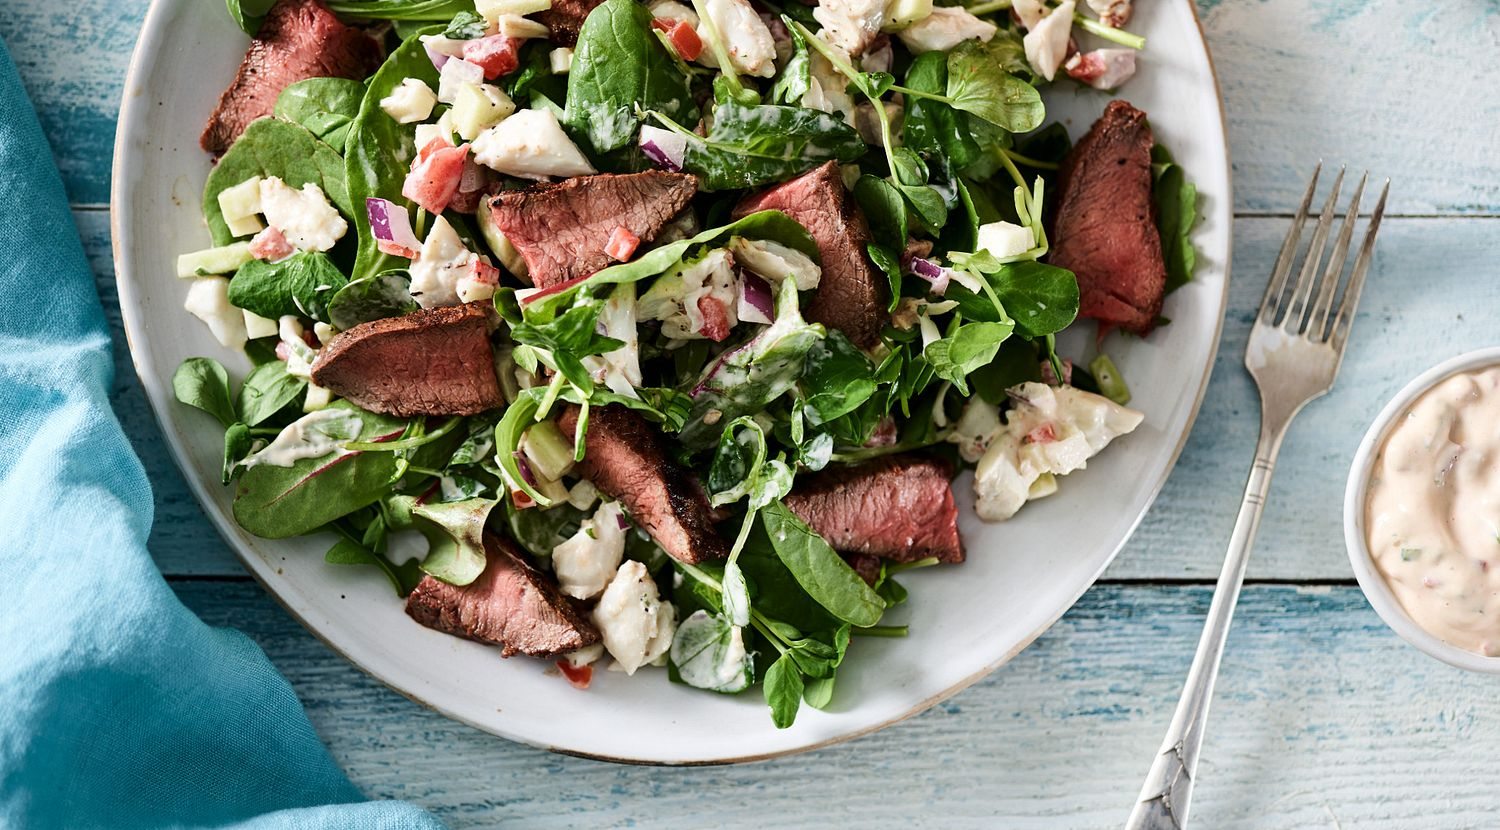 Beef Flat Iron Steak Salad with Remoulade Sauce